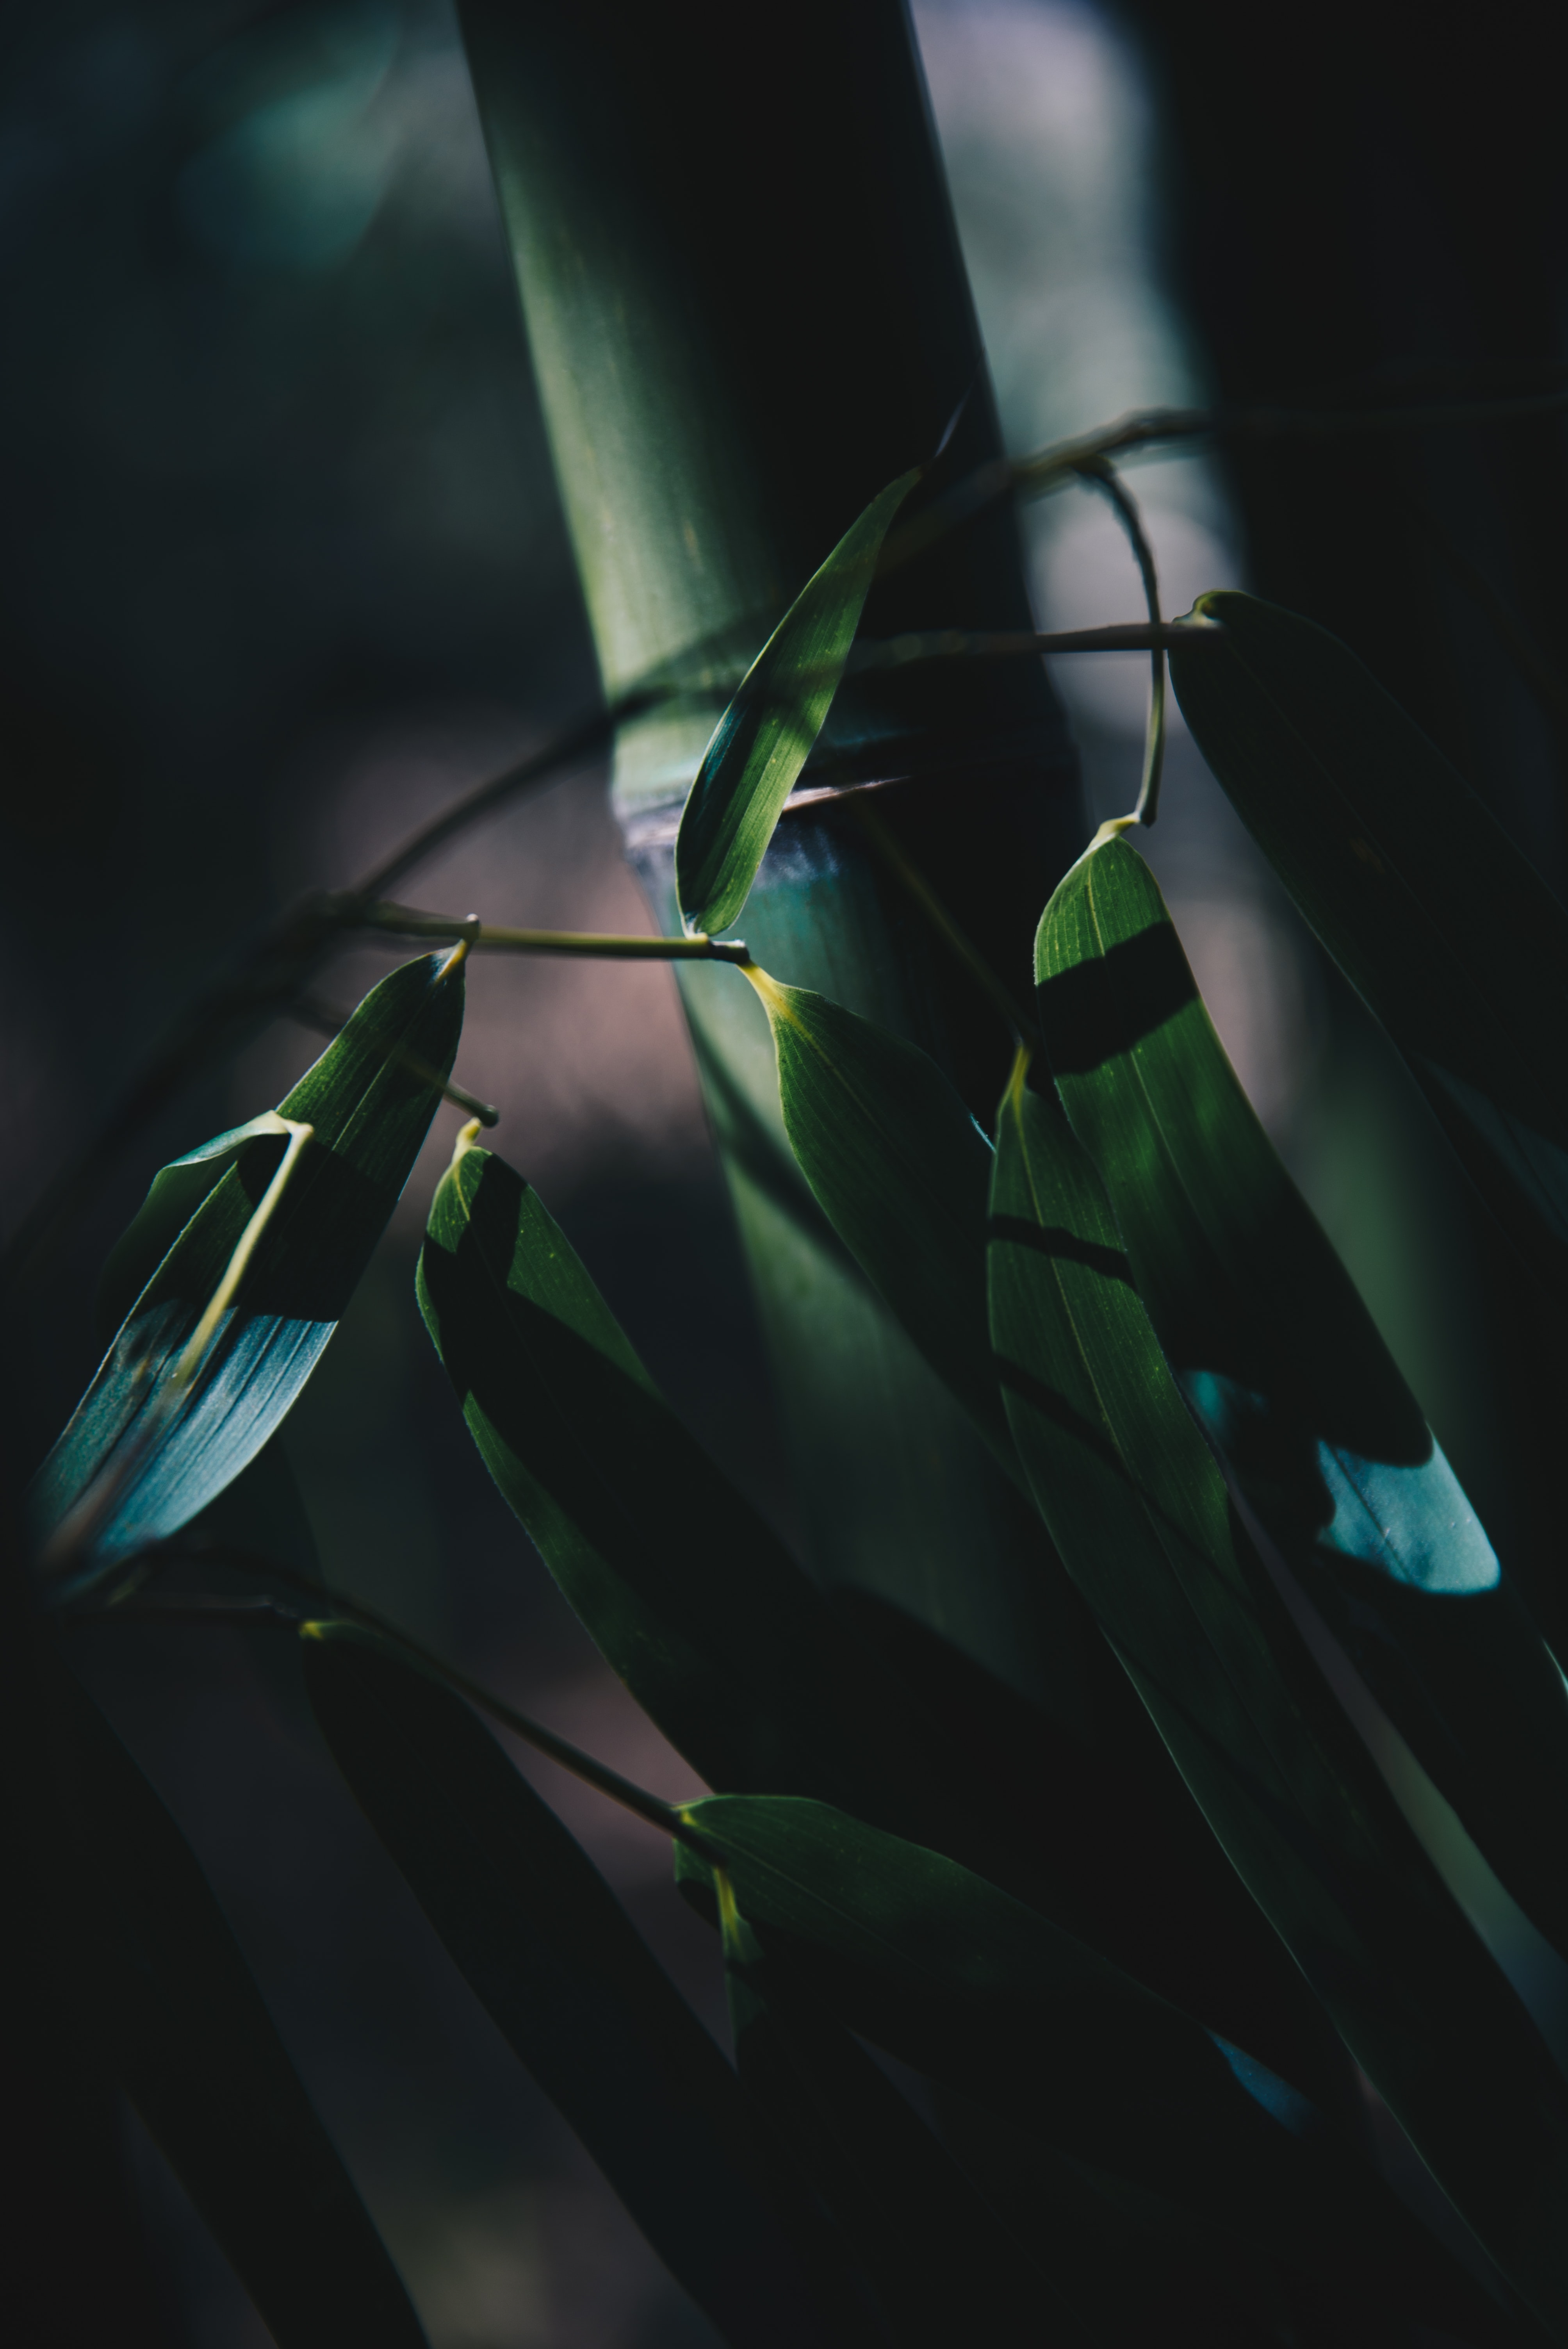 shadow photography of bamboo grasses